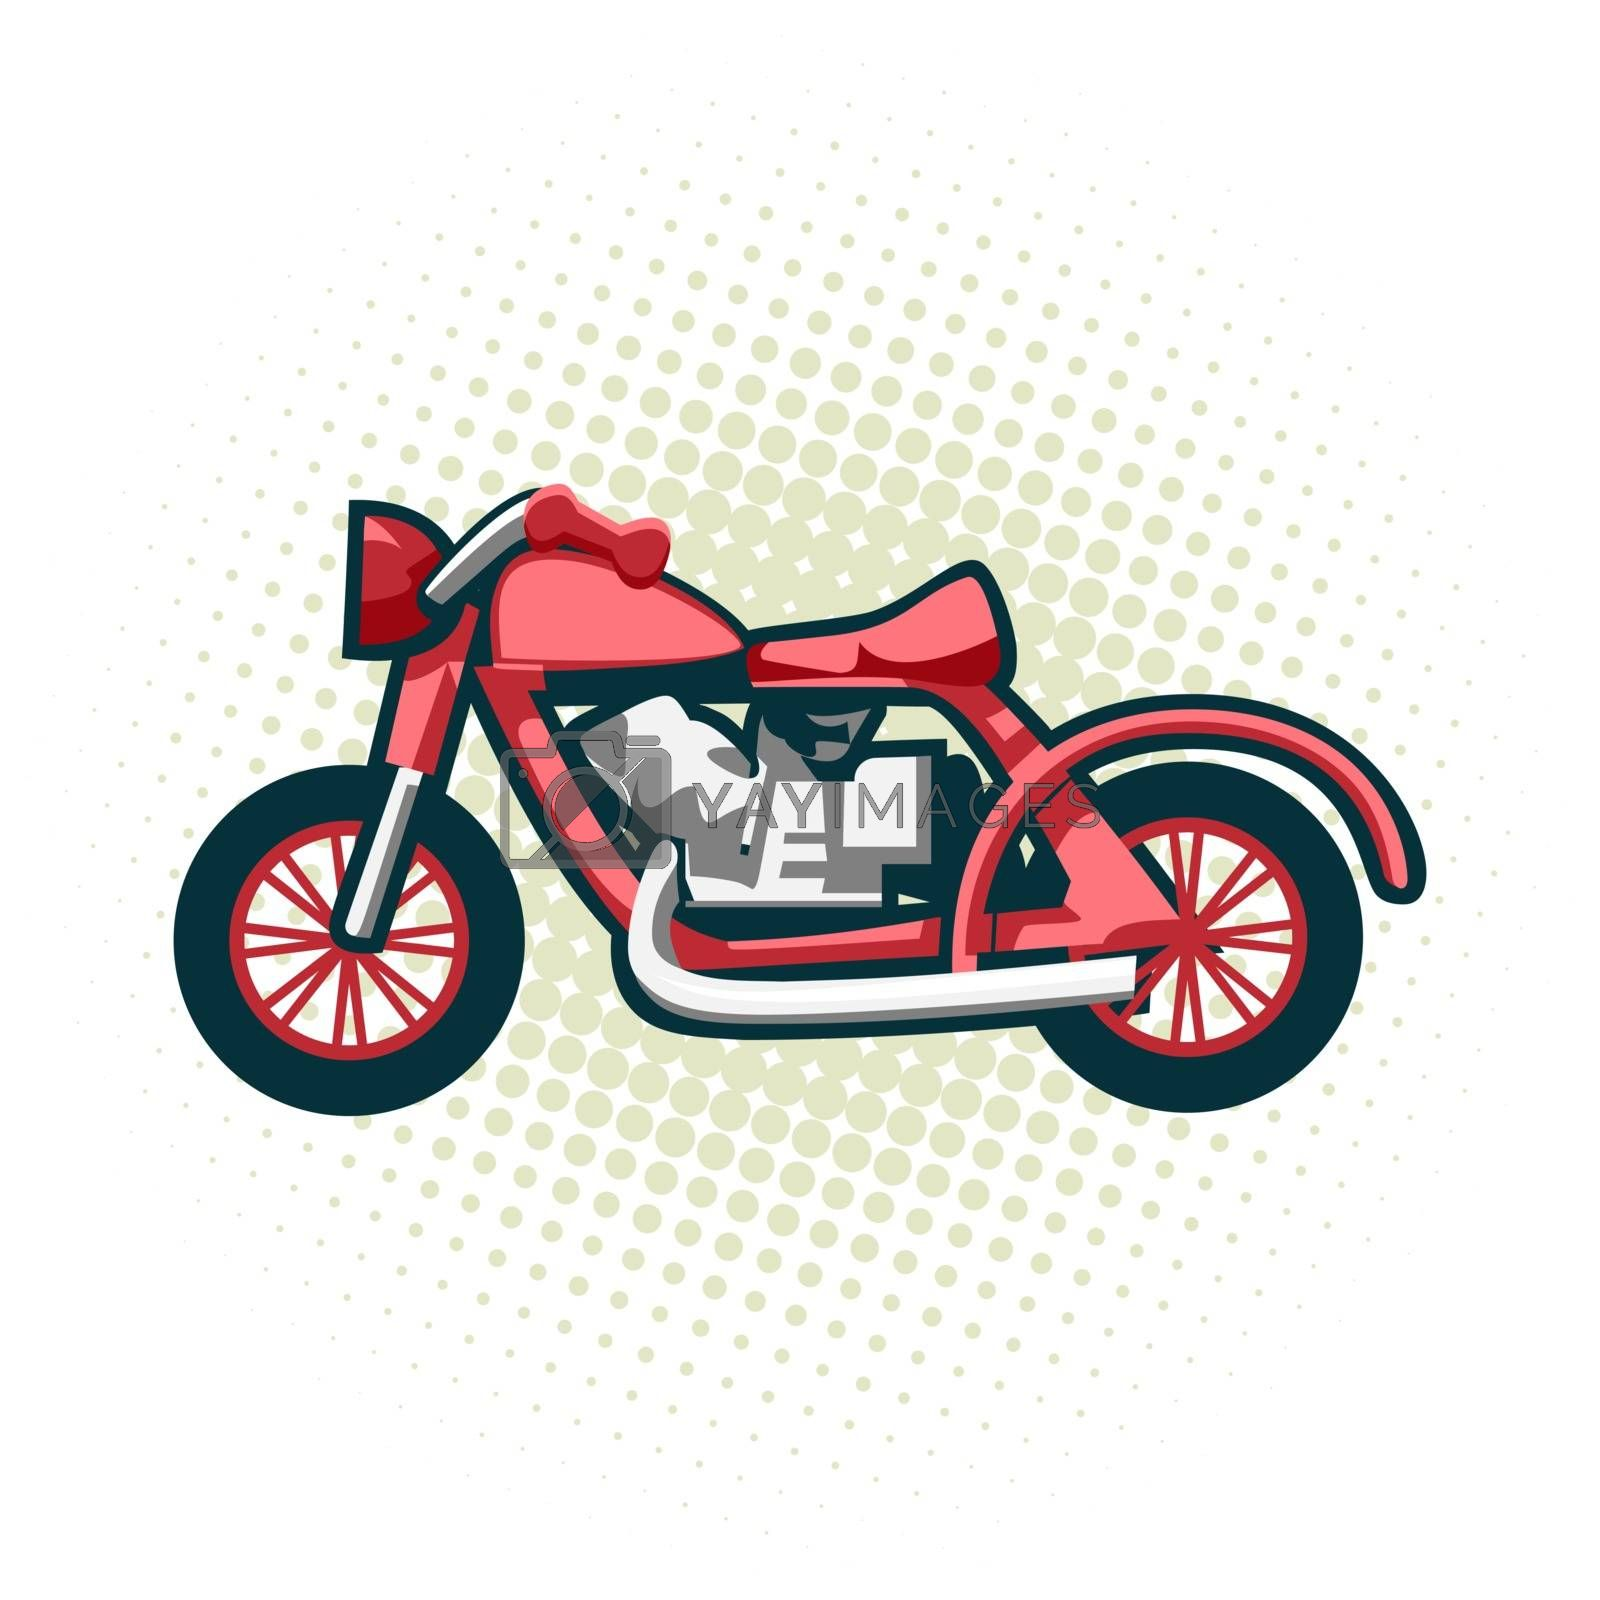 The classic retro motorcycle. This is the great example of an old racing bikes. by Zhukovskyi